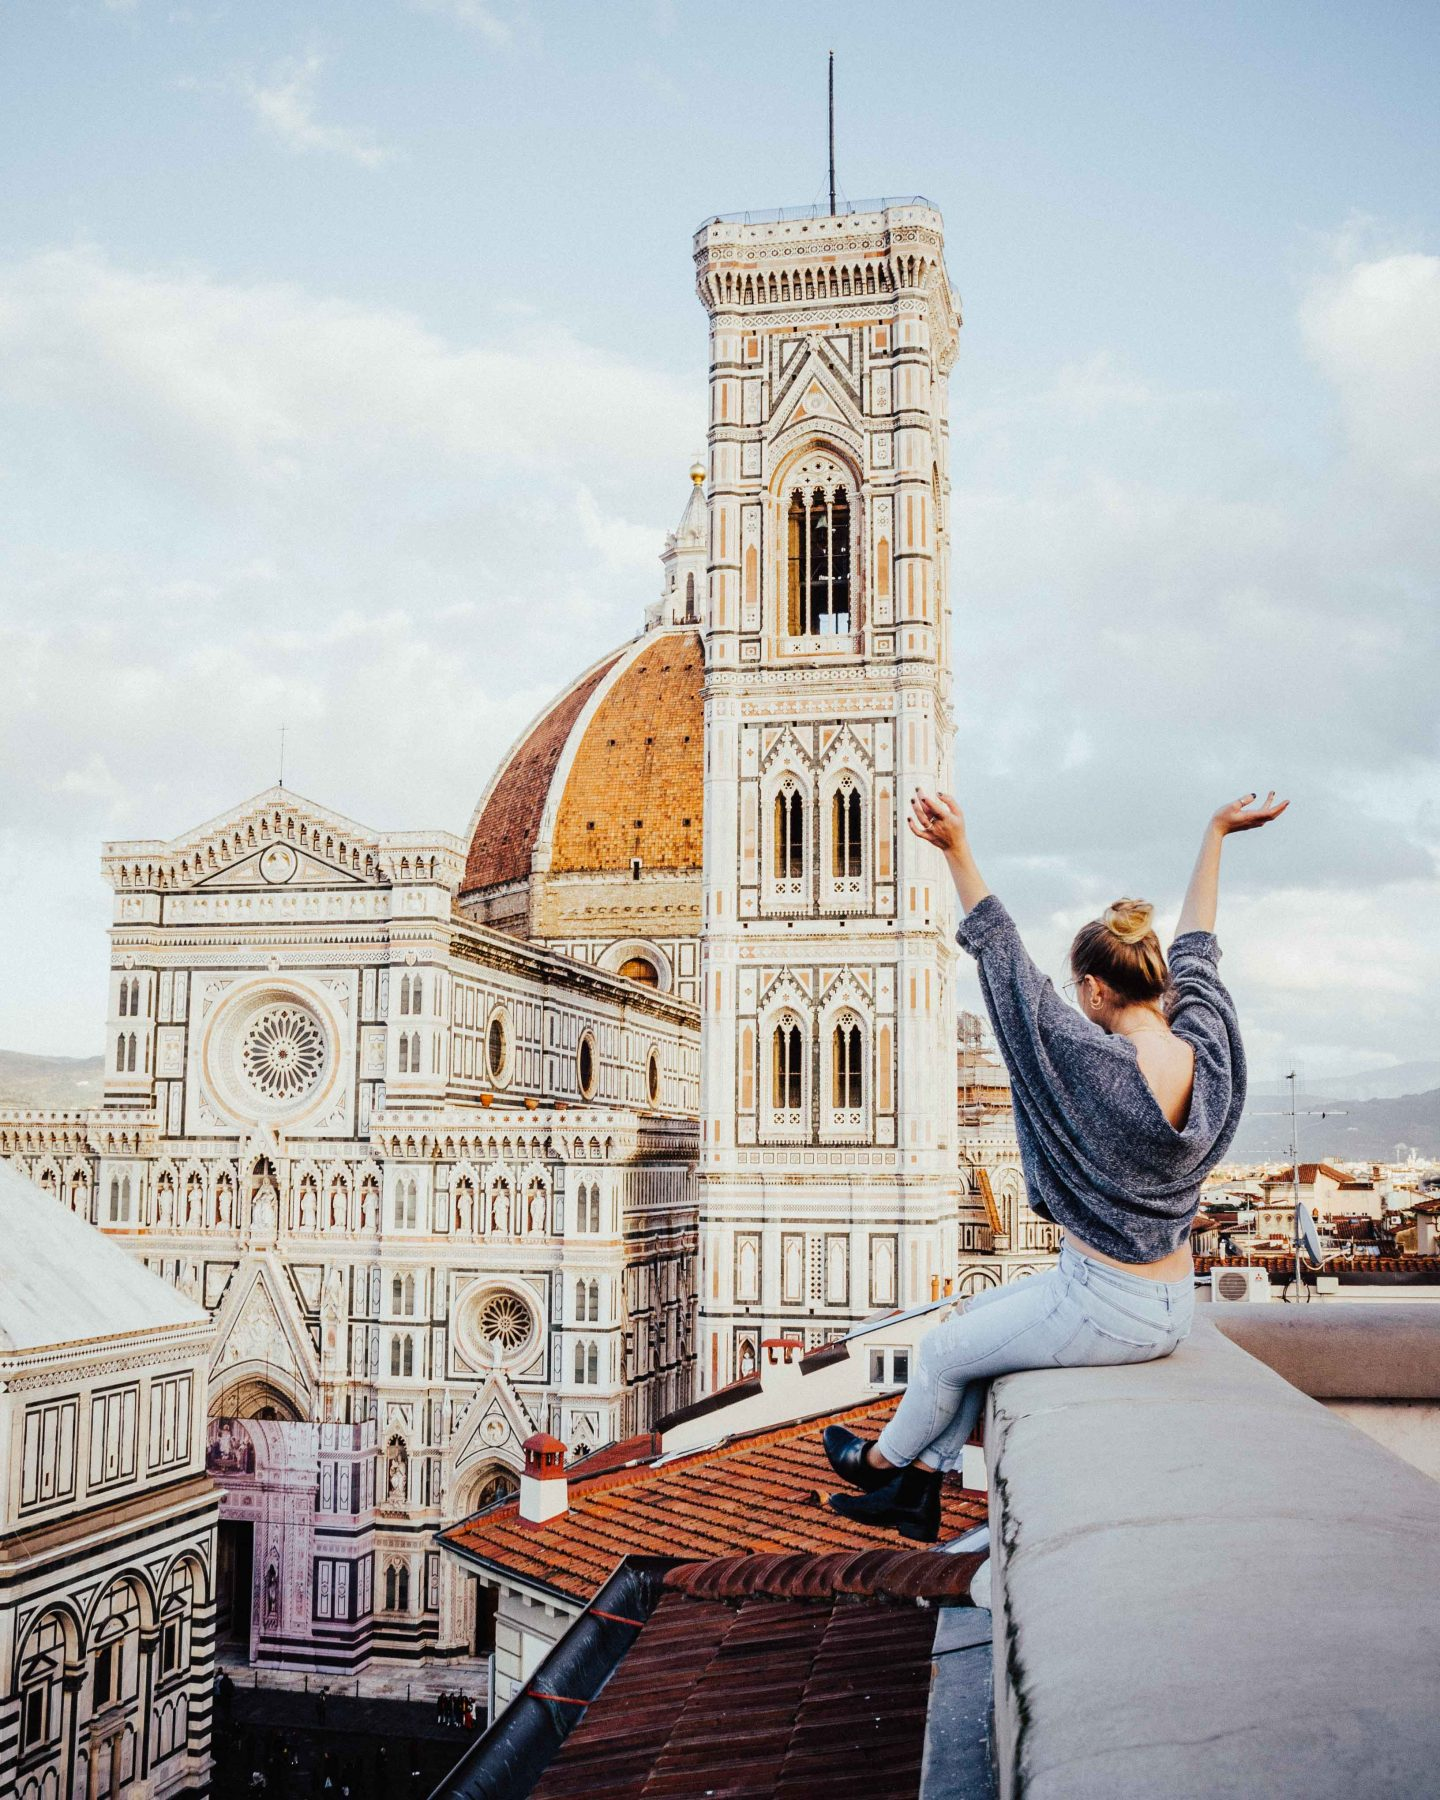 Posing on an apartment rooftop overlooking the Duomo in Florence, Italy!